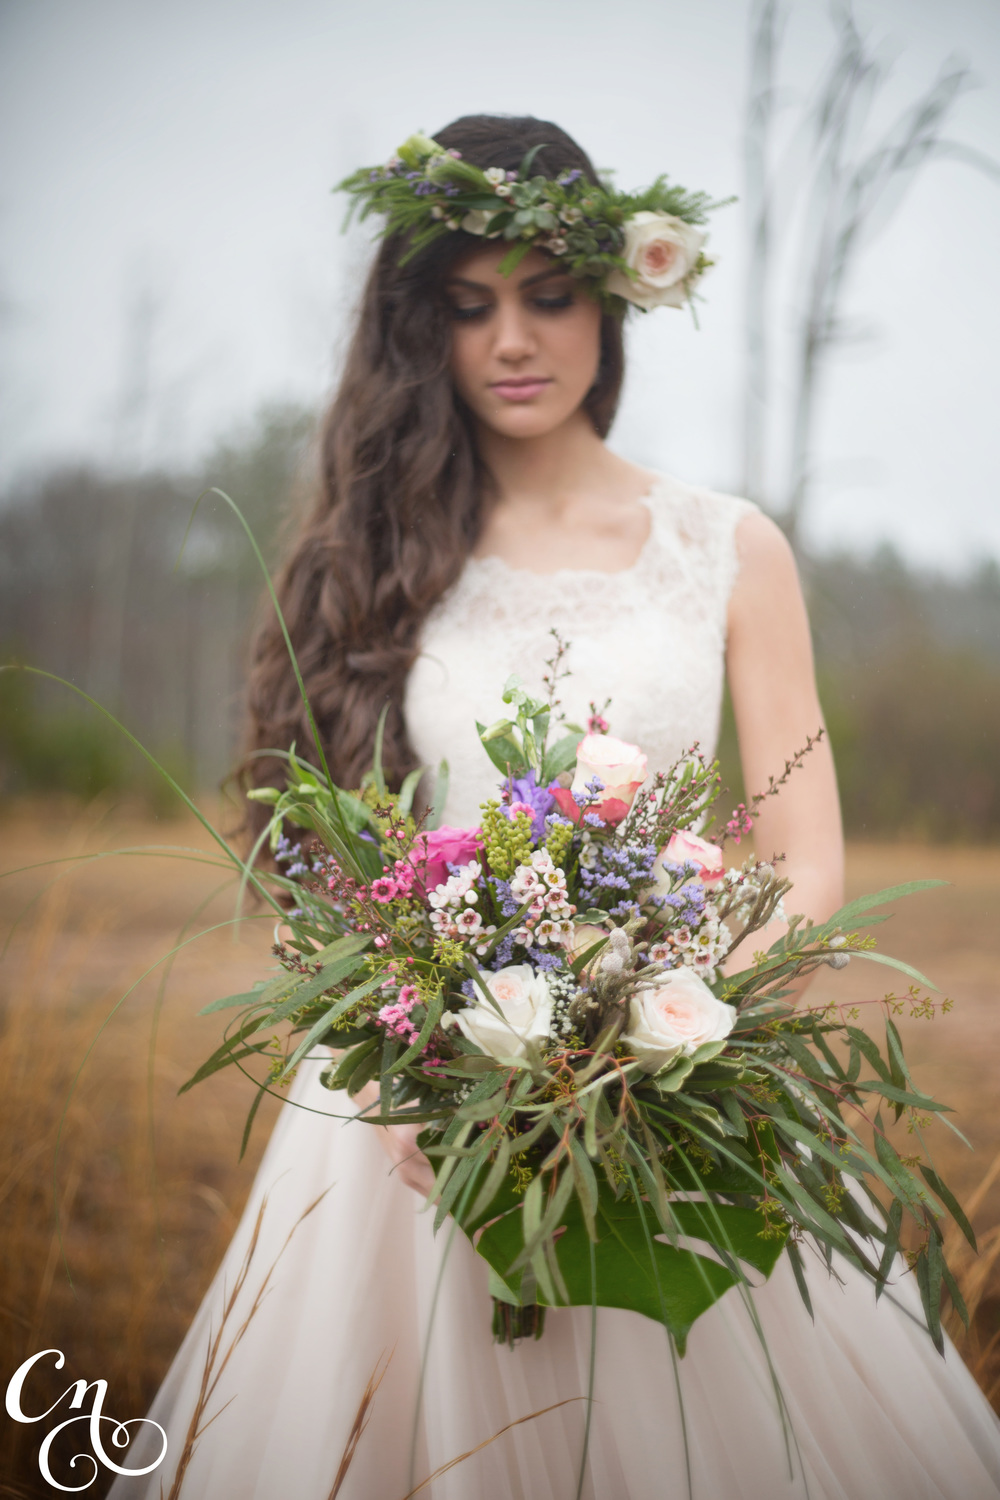 CNP Styled Shoot_5883wm.jpg